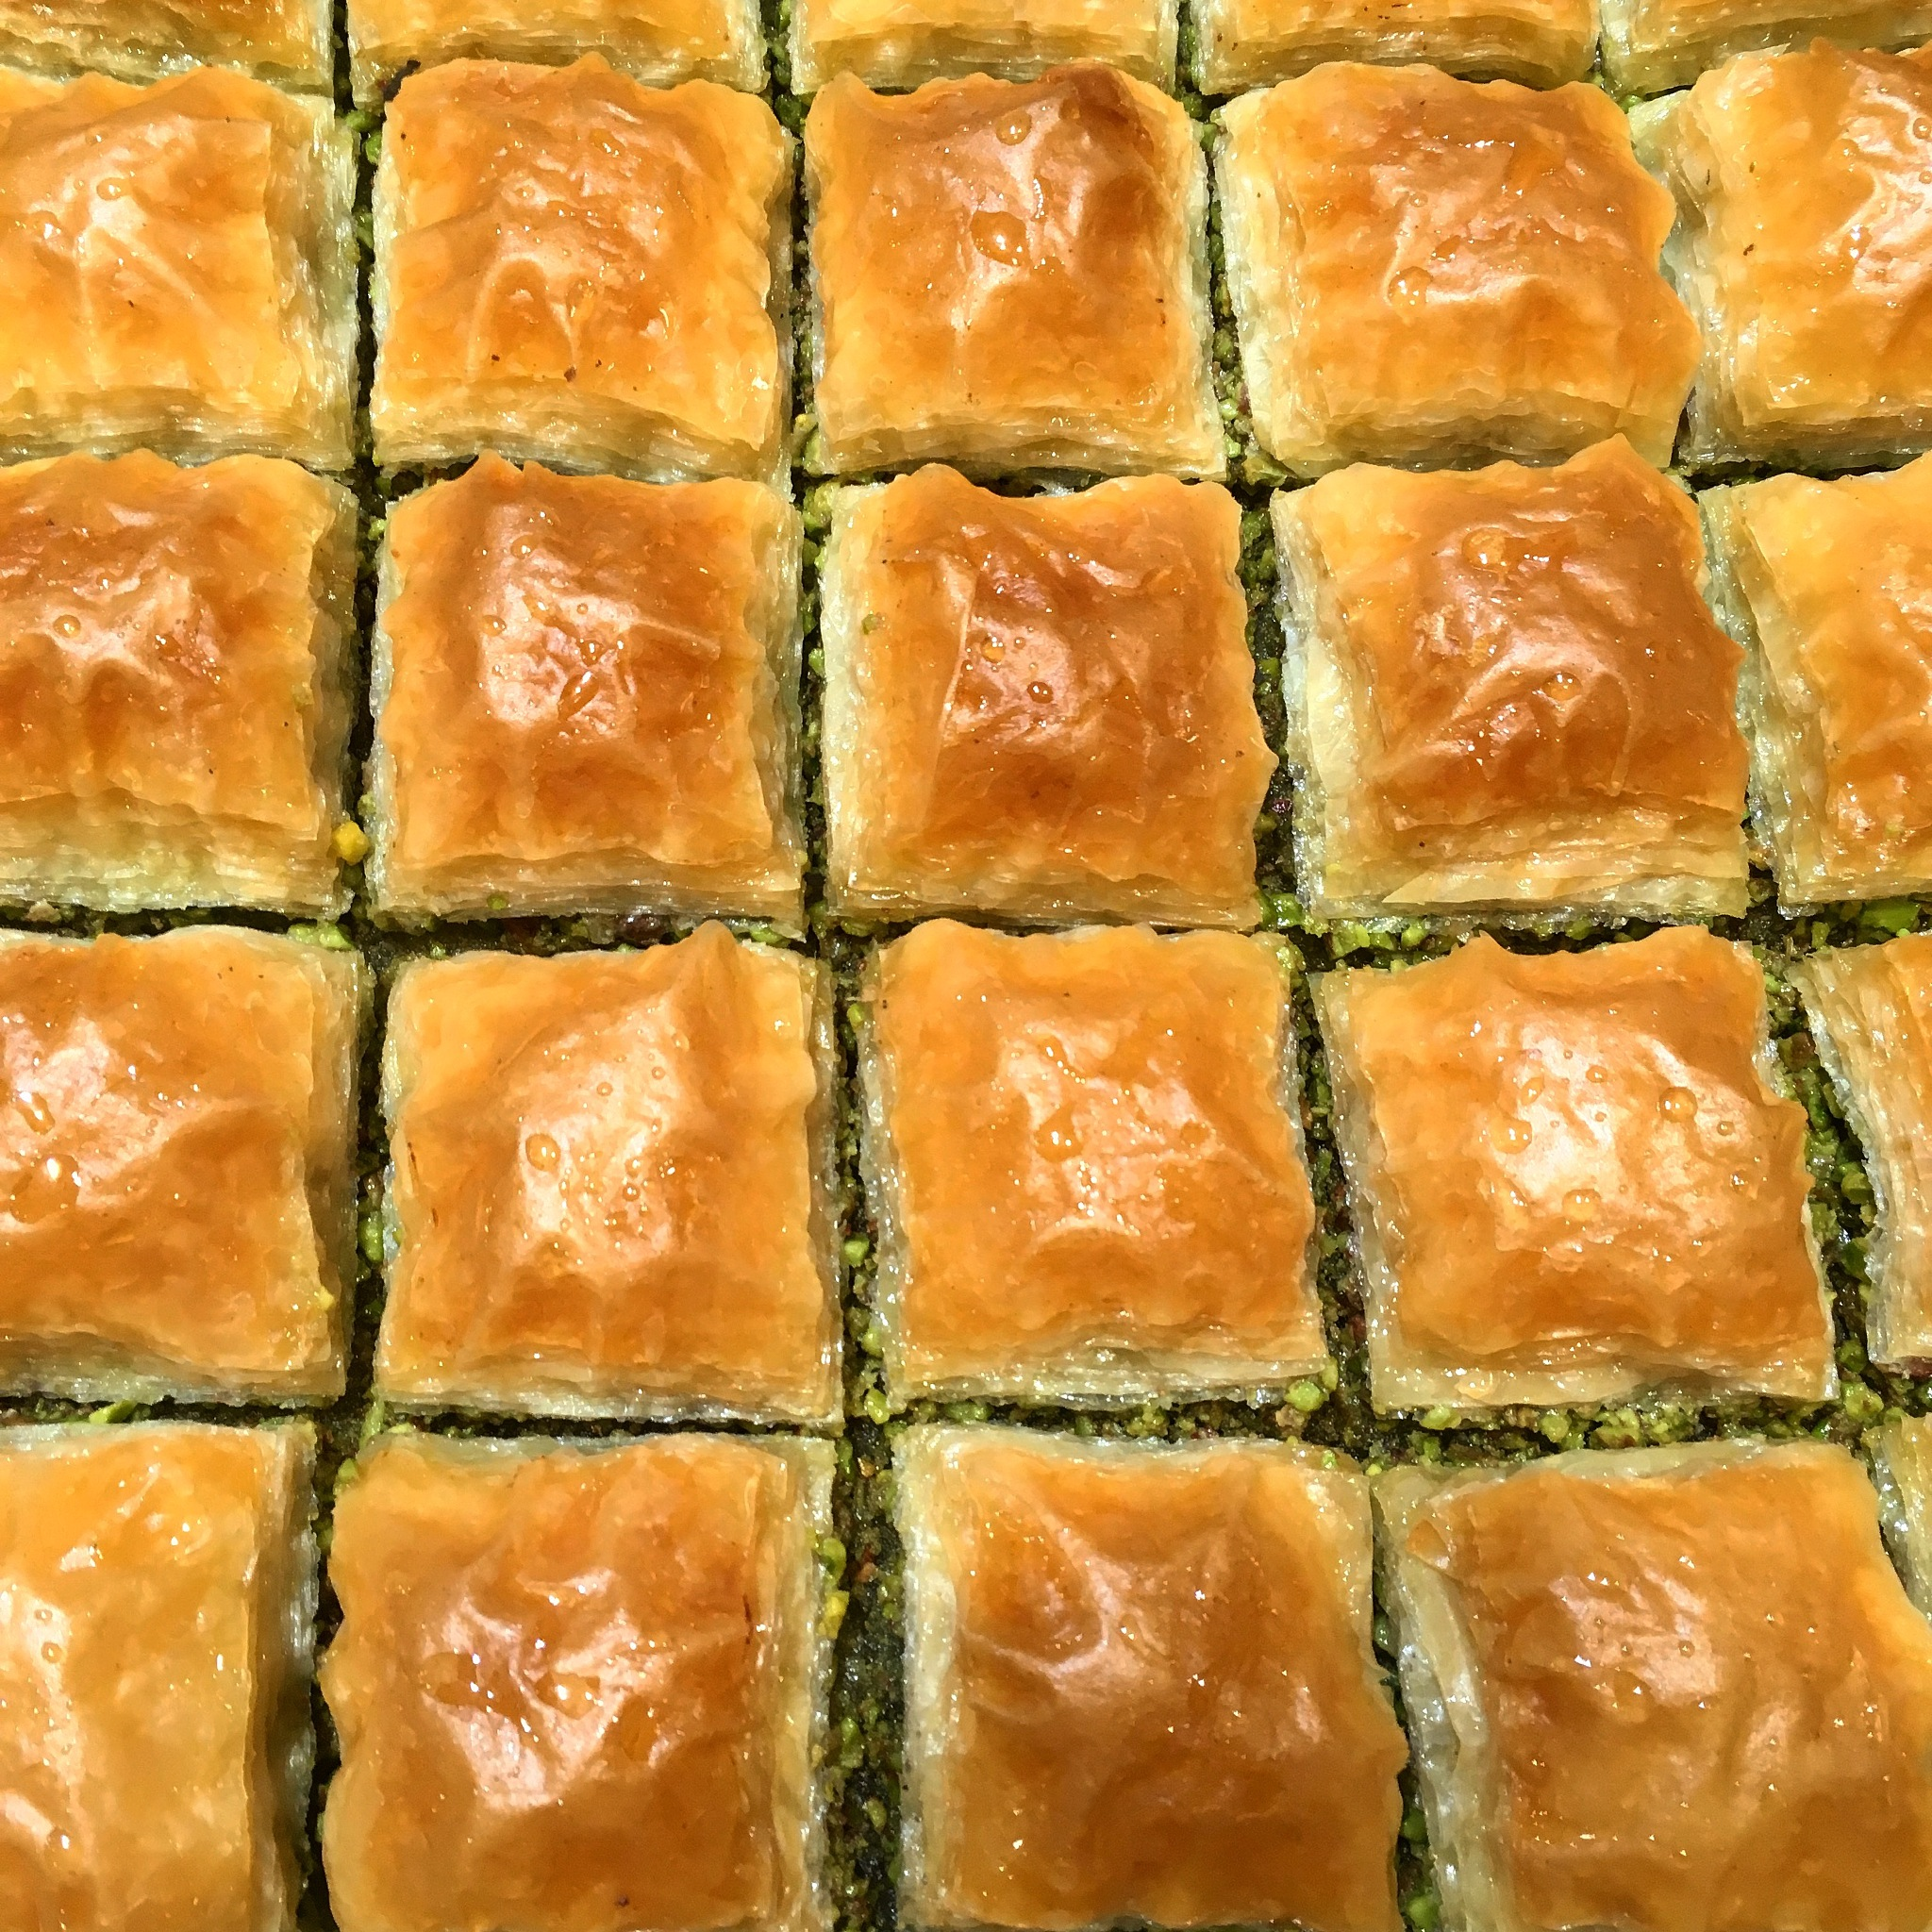 The most famous and delicious Gazientap Baklava by Musa Hamza